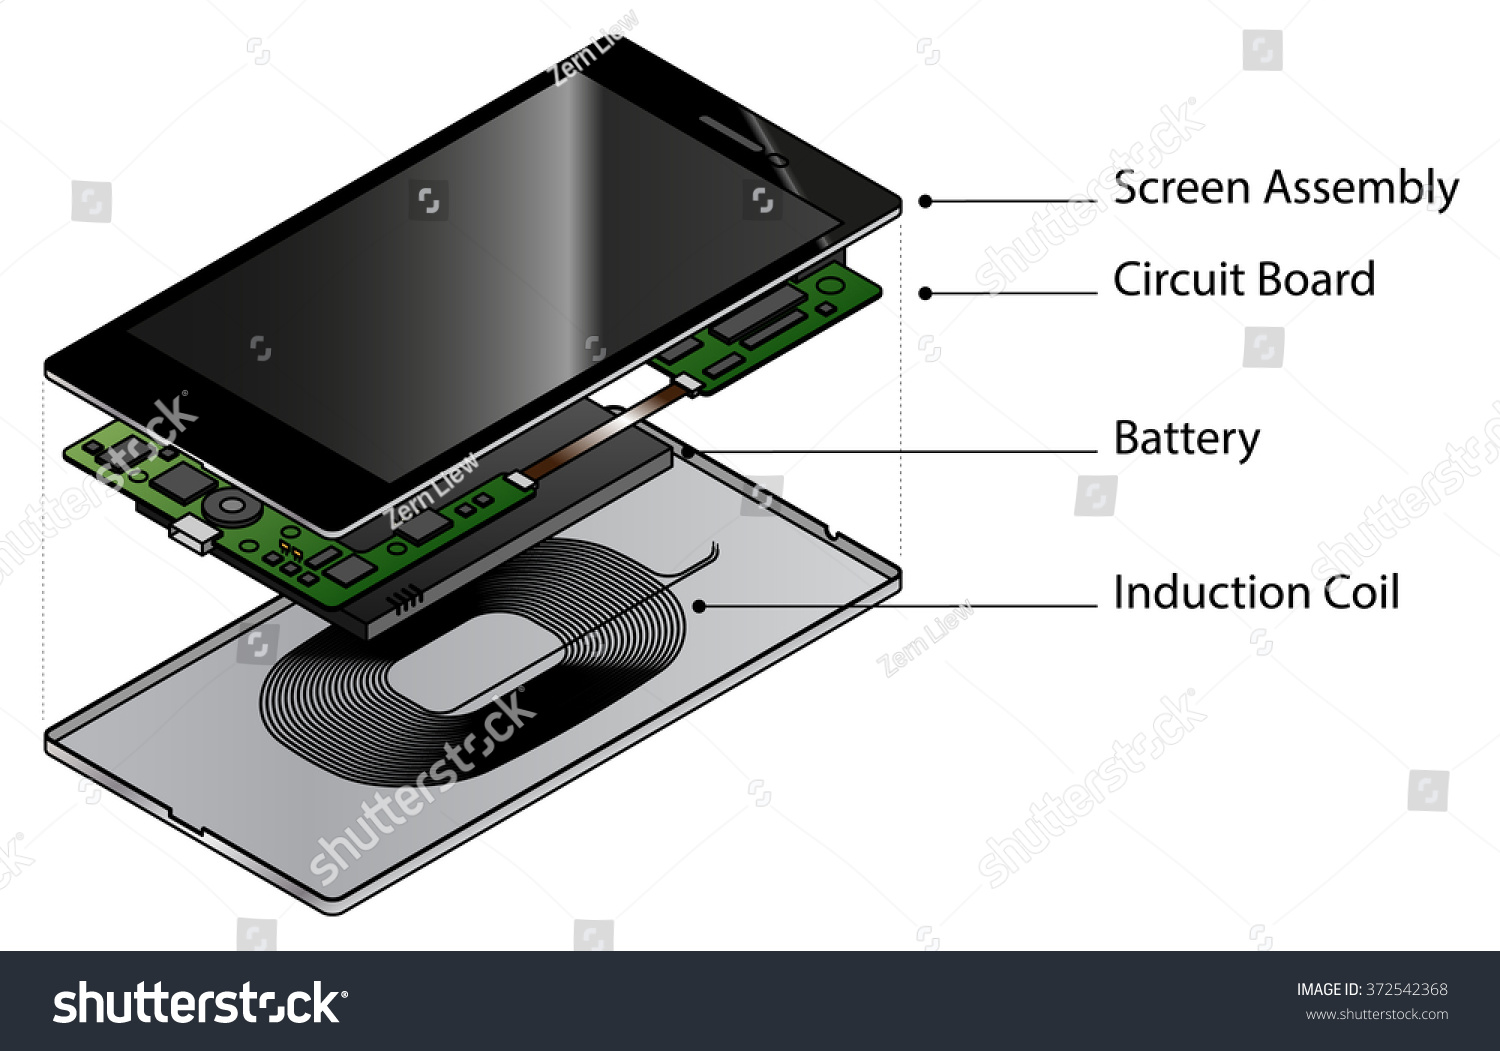 Exploded Diagram Showing Internal Components Smart Stock Vector Of A Battery An The Phone With Wireless Charging Induction